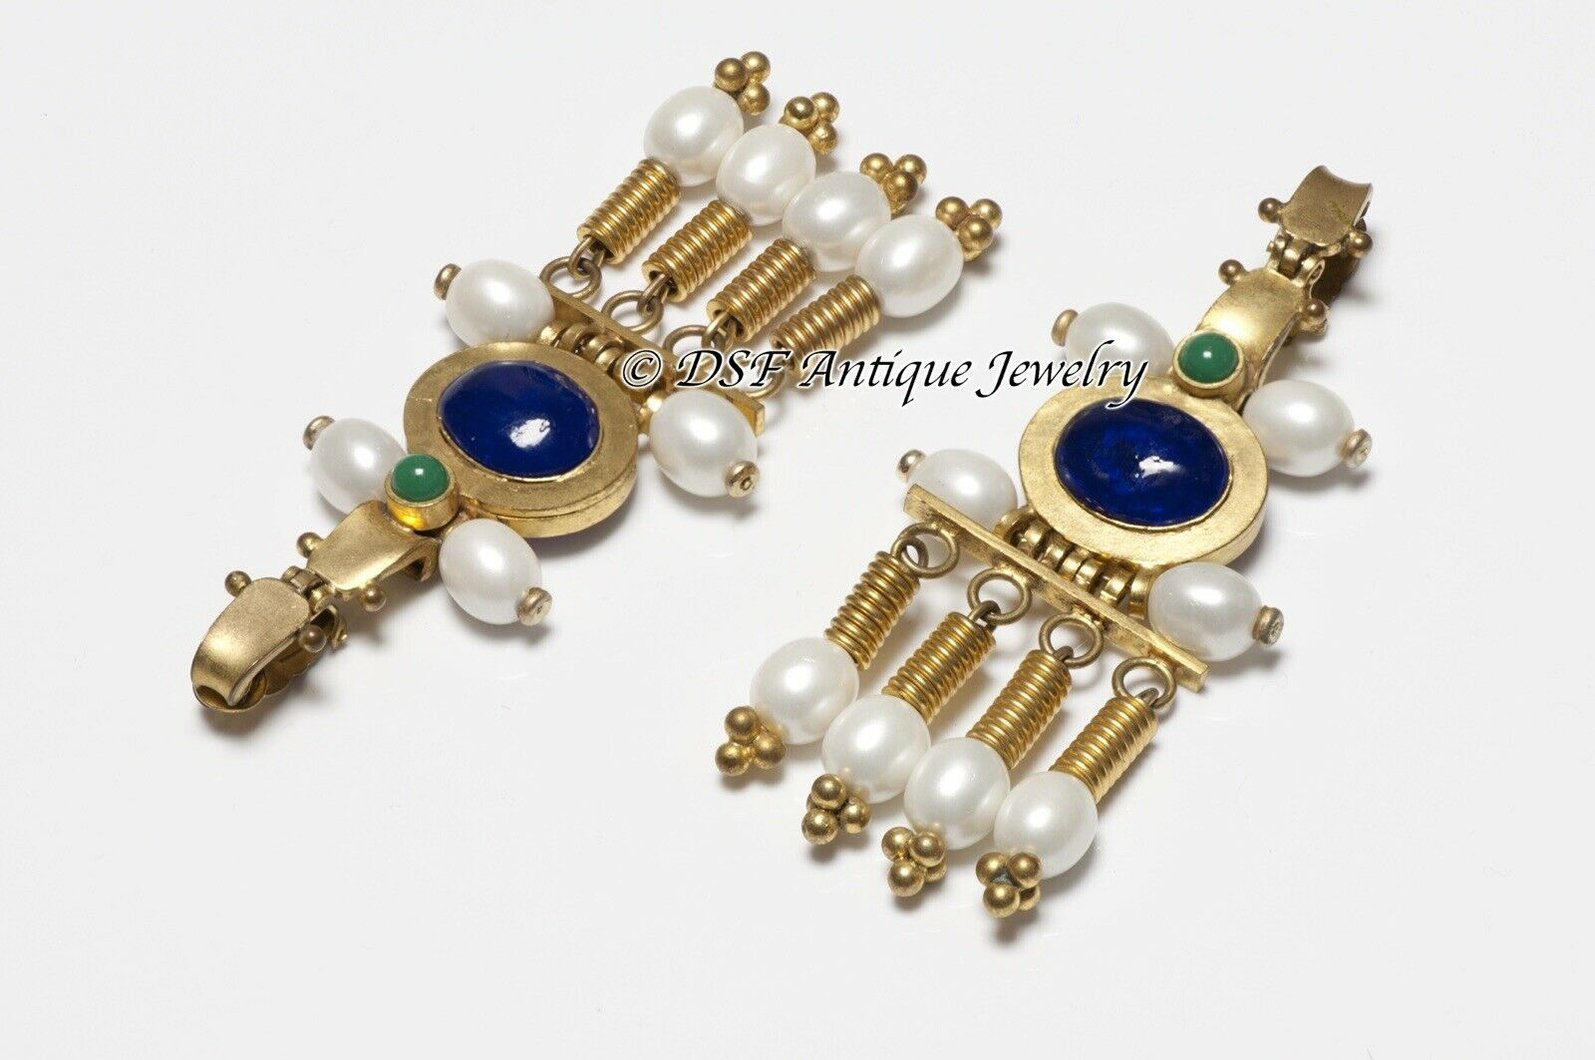 https://dsfantiquejewelry.com/products/chanel-paris-1970-s-gripoix-byzantine-style-pearl-blue-green-glass-earrings